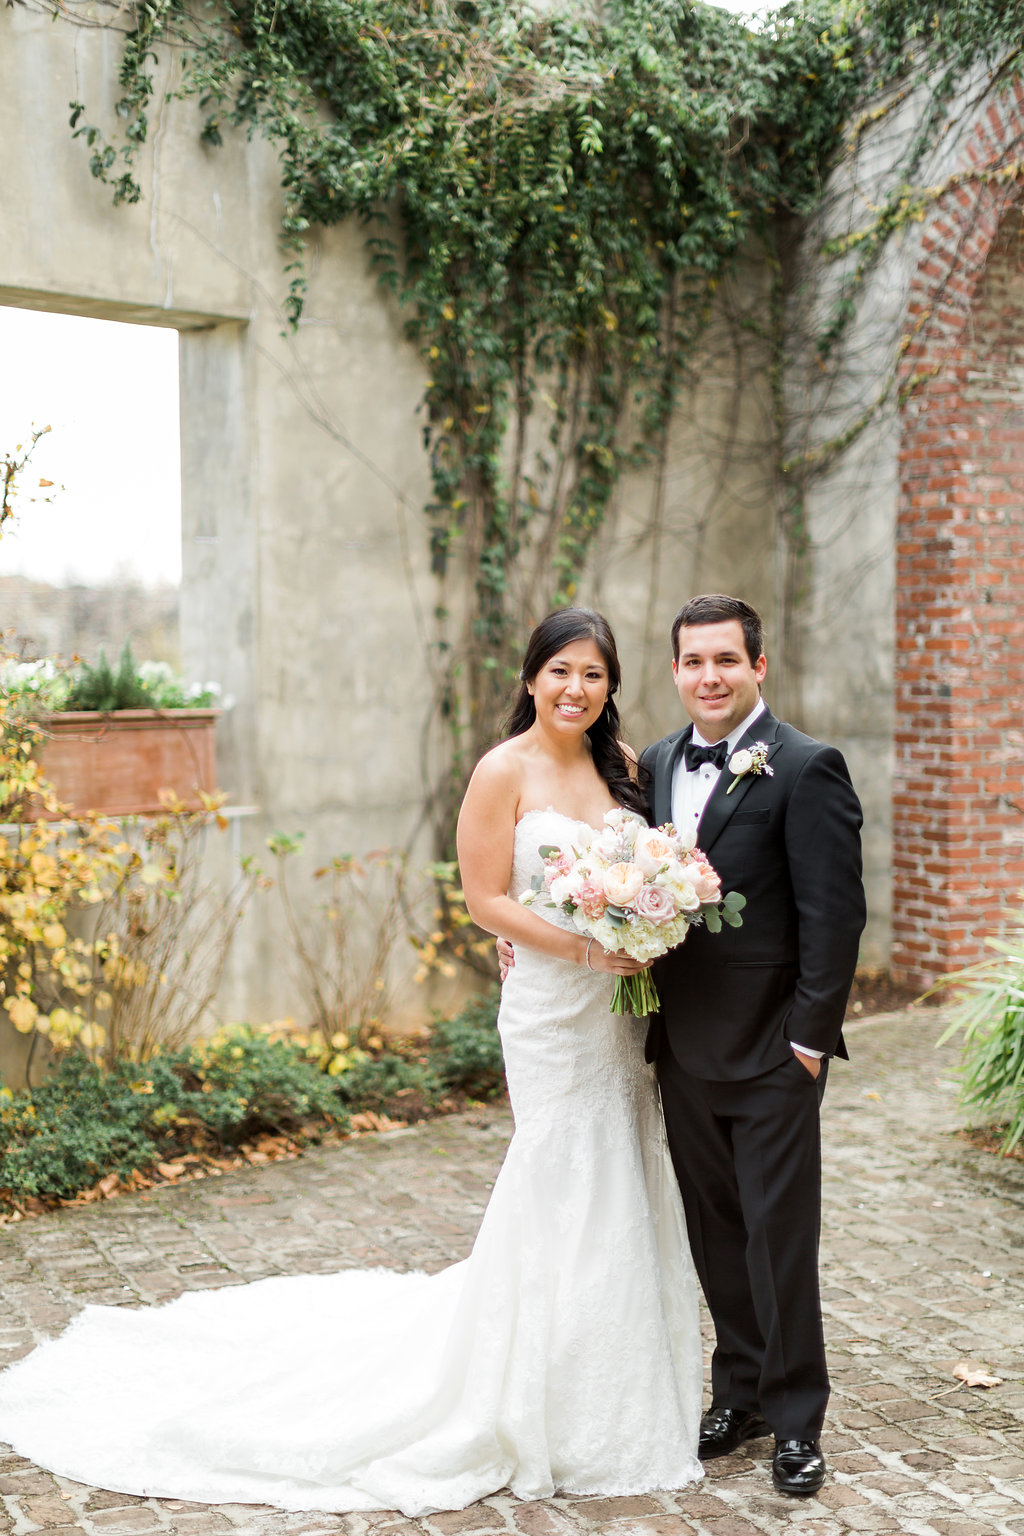 Summerour Studio Wedding - Atlanta Wedding Venue — The Overwhelmed Bride Wedding Blog